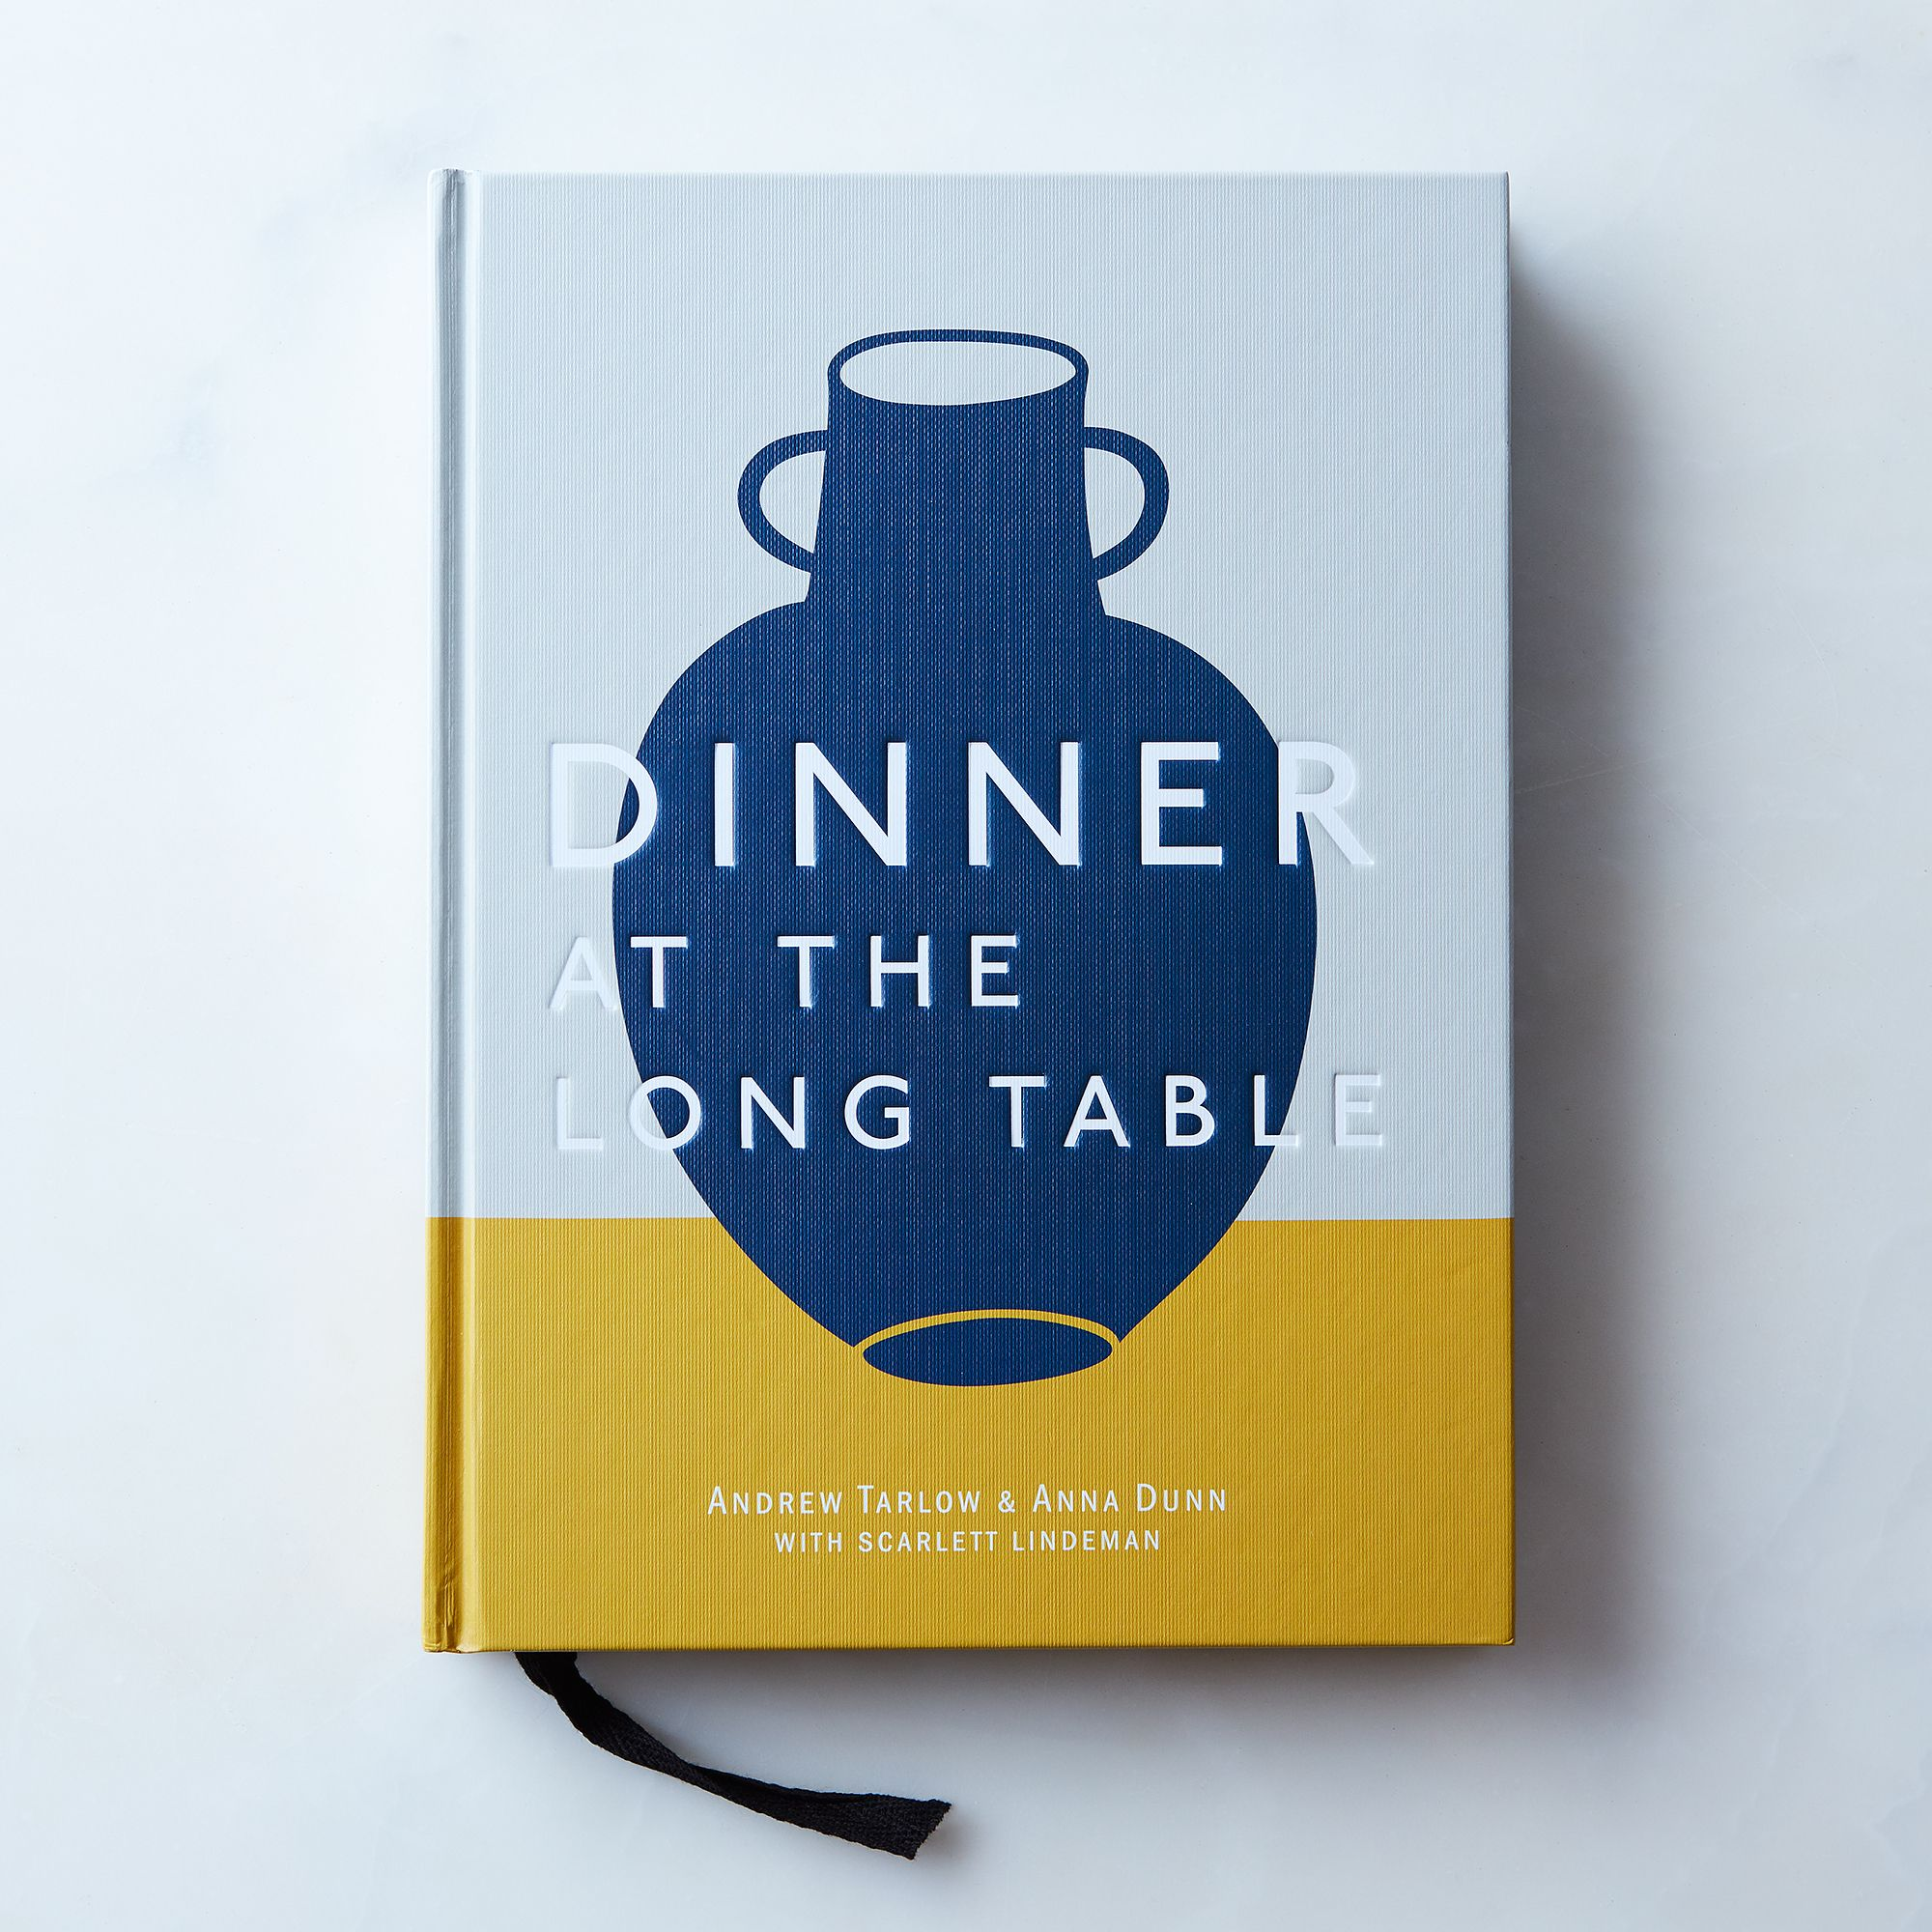 9163242d 62e6 42ab aef9 e51d35c89a0a  2016 0824 dinner at the long table cookbook silo mark weinberg 027